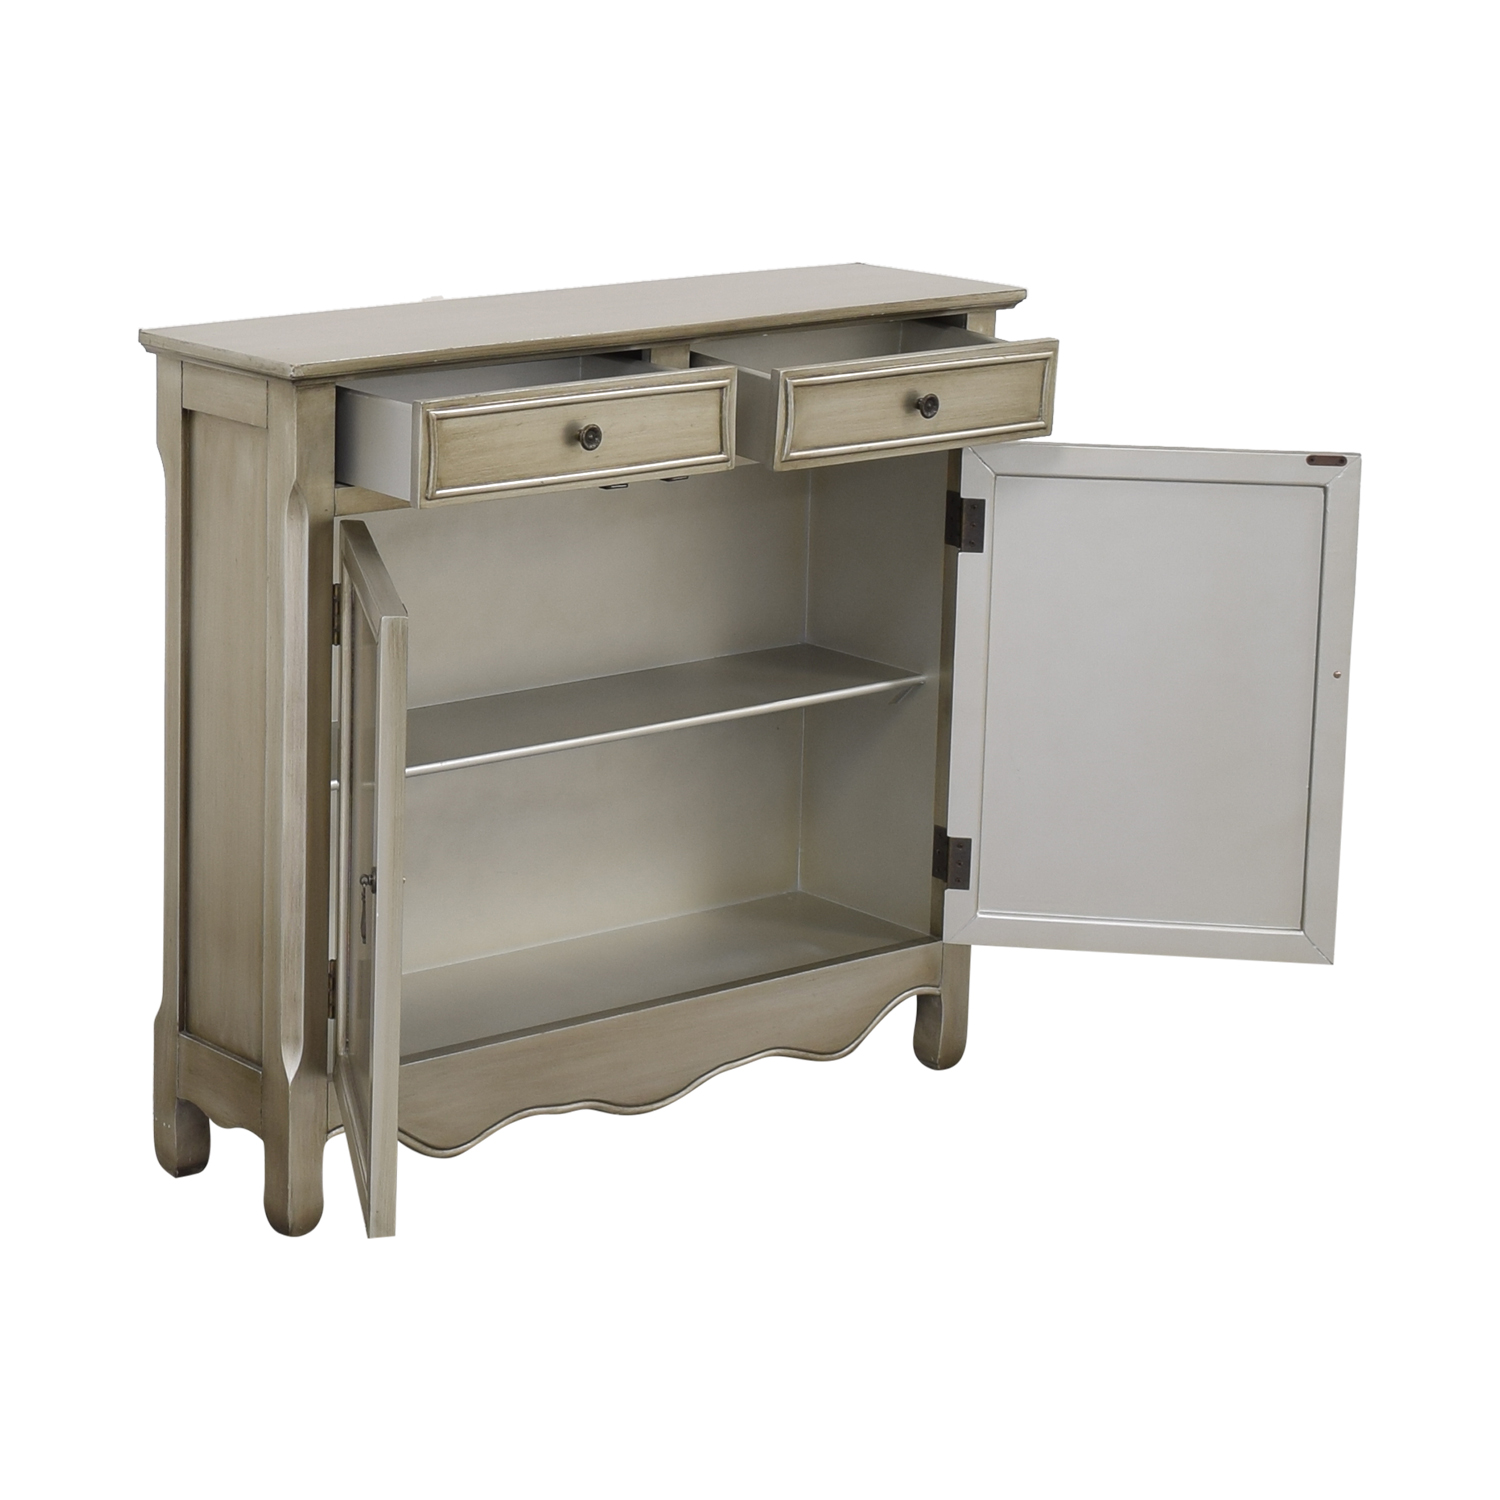 Storage Cabinet used